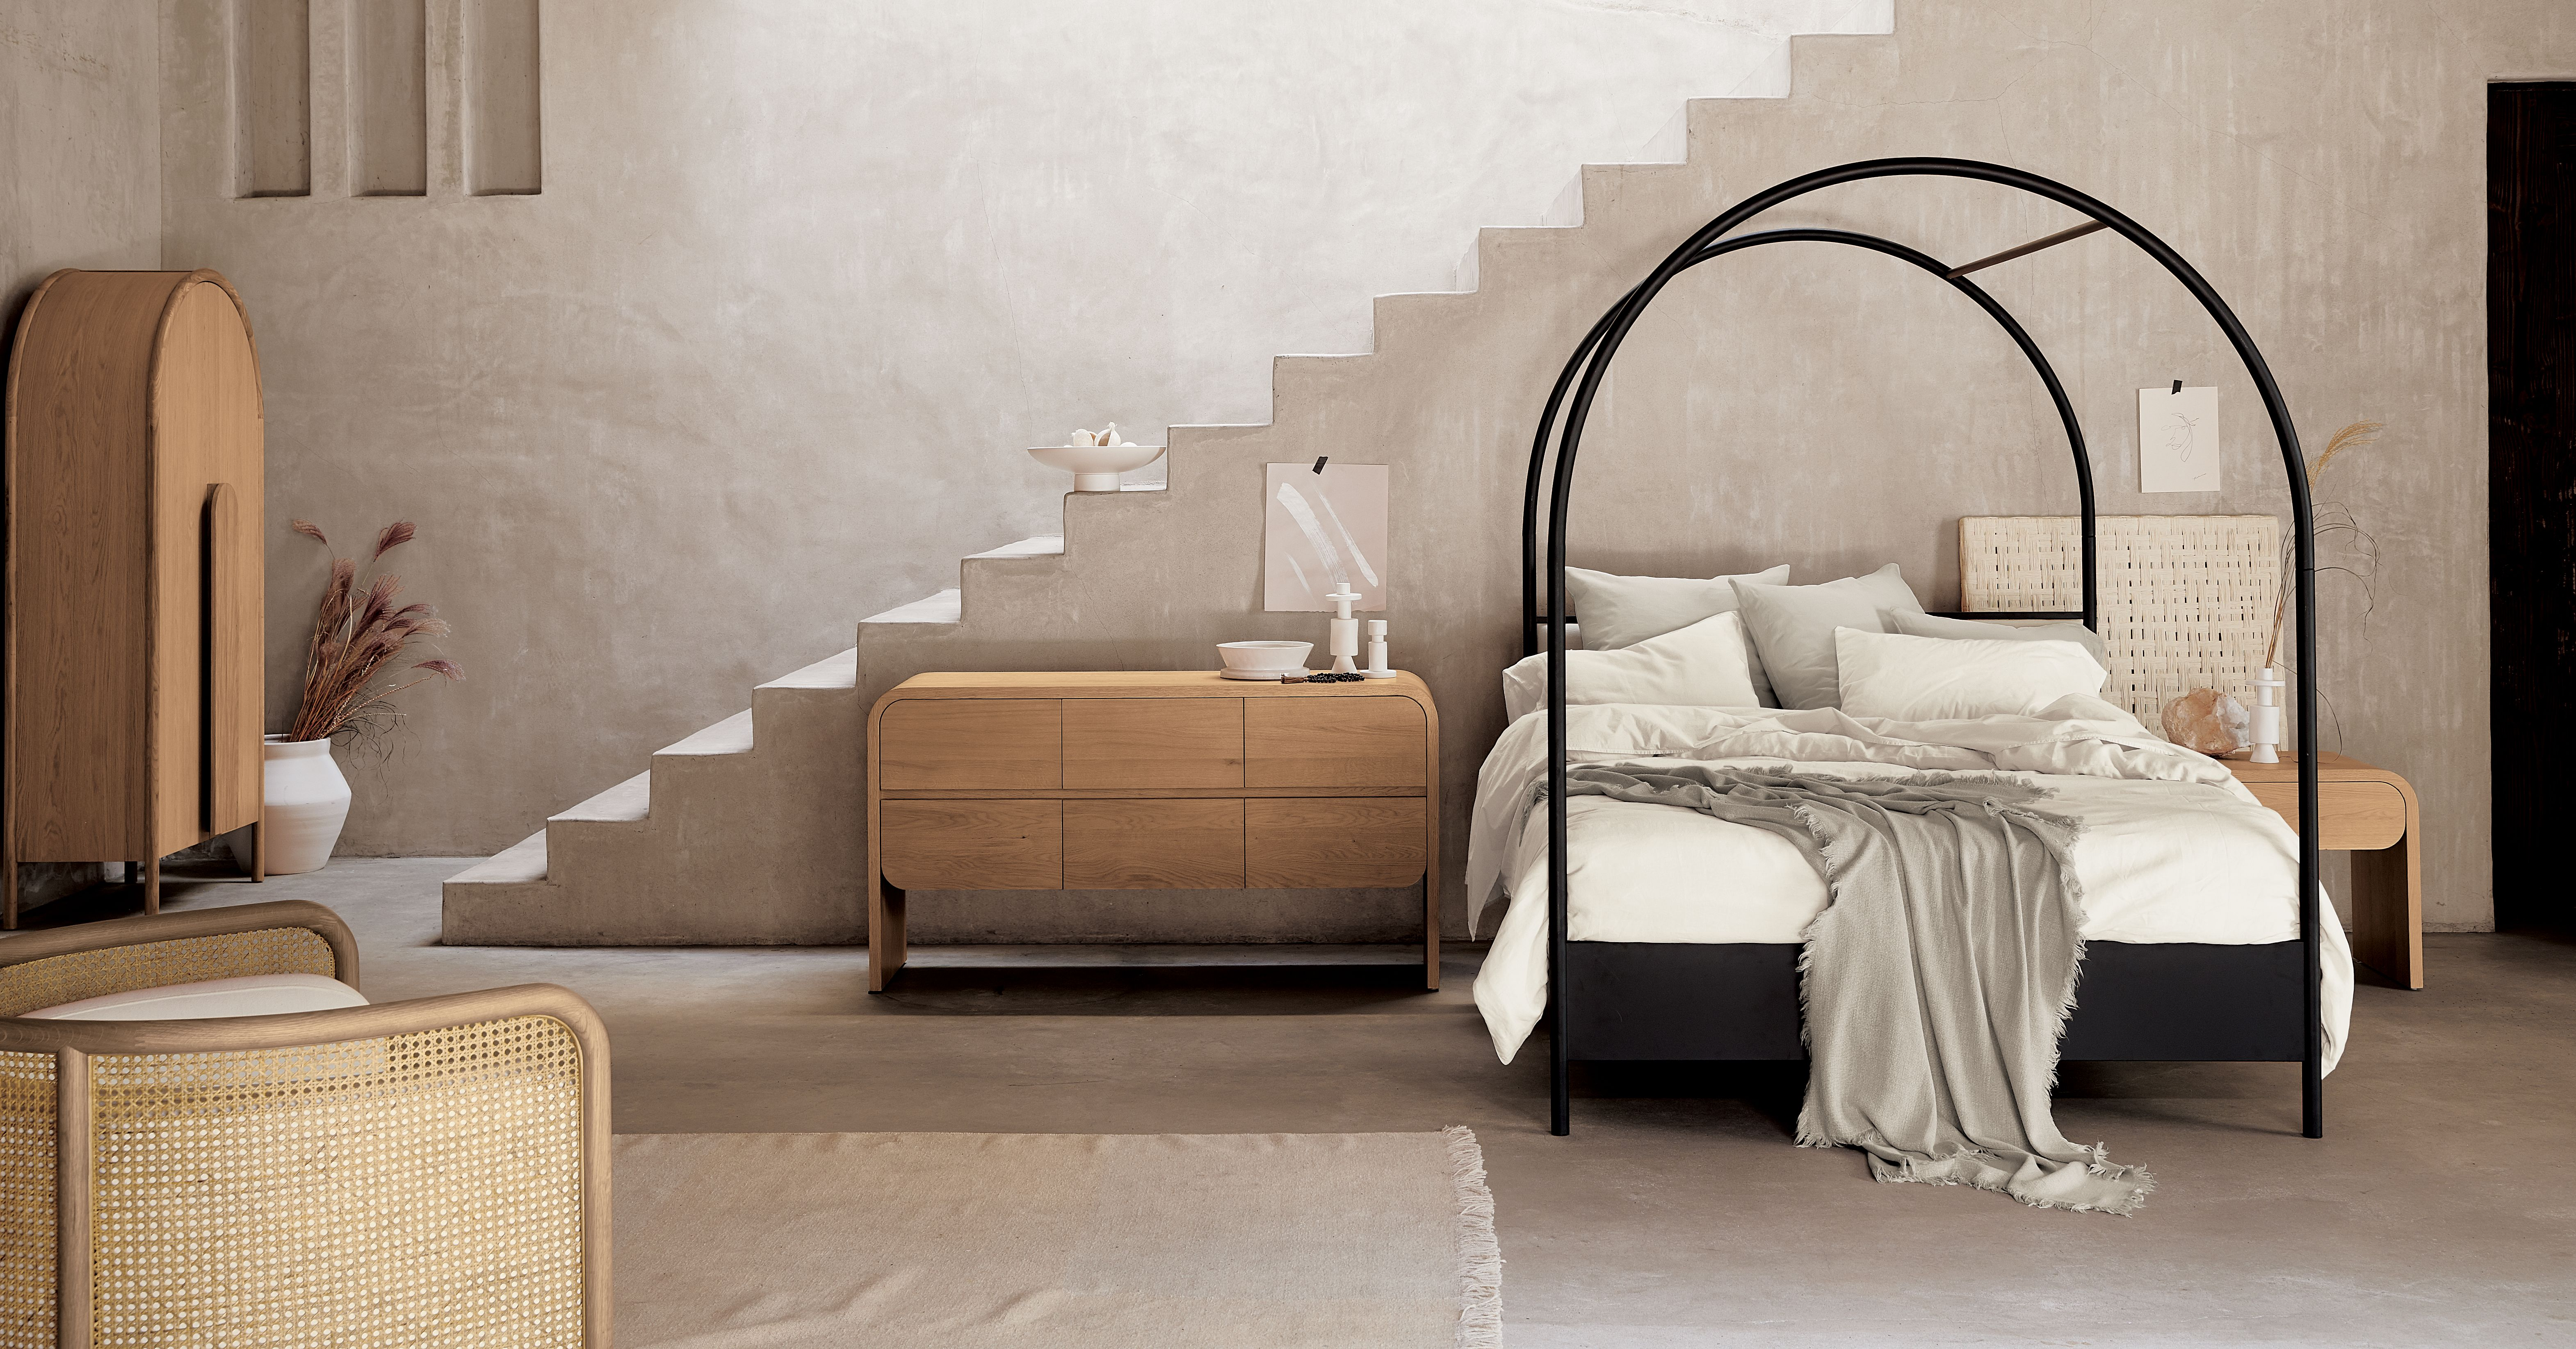 Canopy bed in bedroom with round arches.